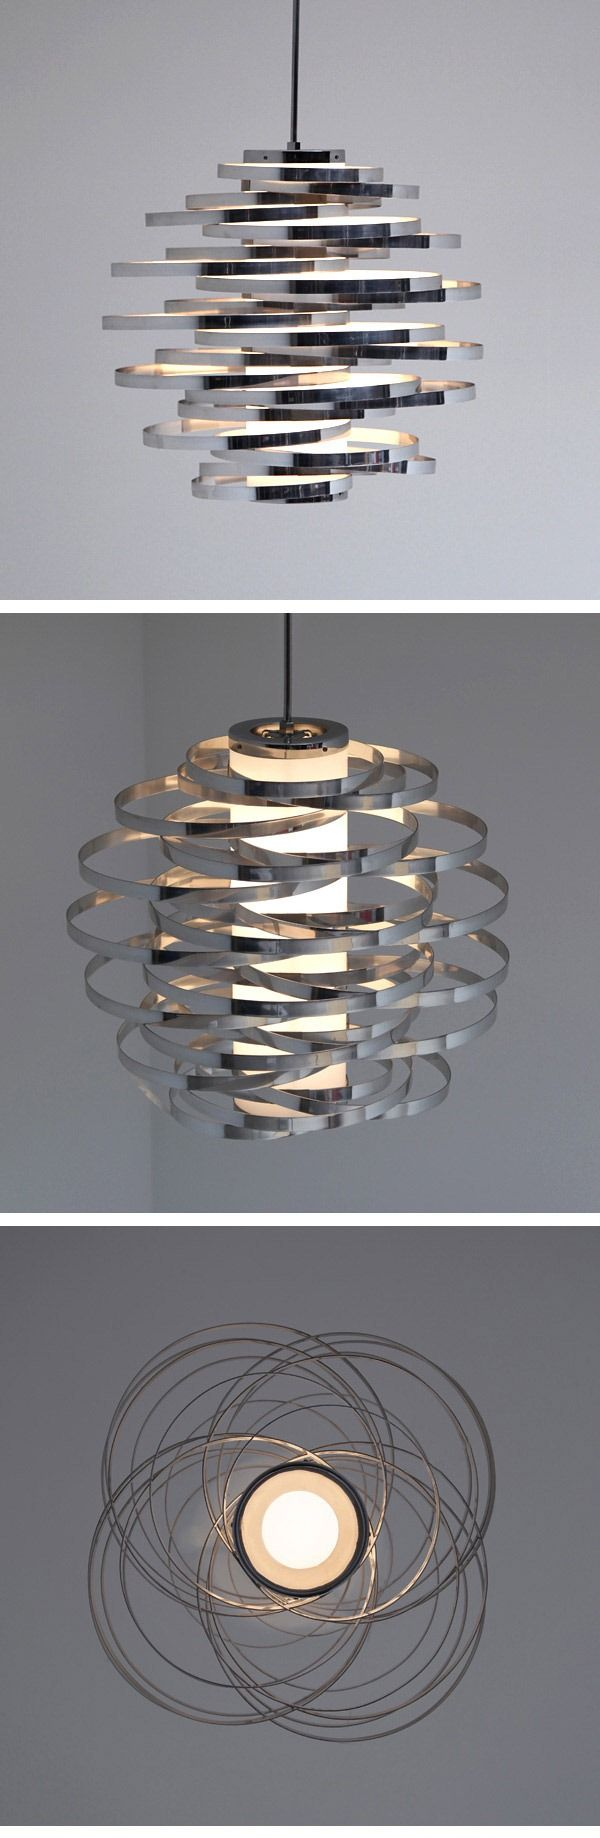 Stunning Gaetano Sciolari pendant light from the 1960s…